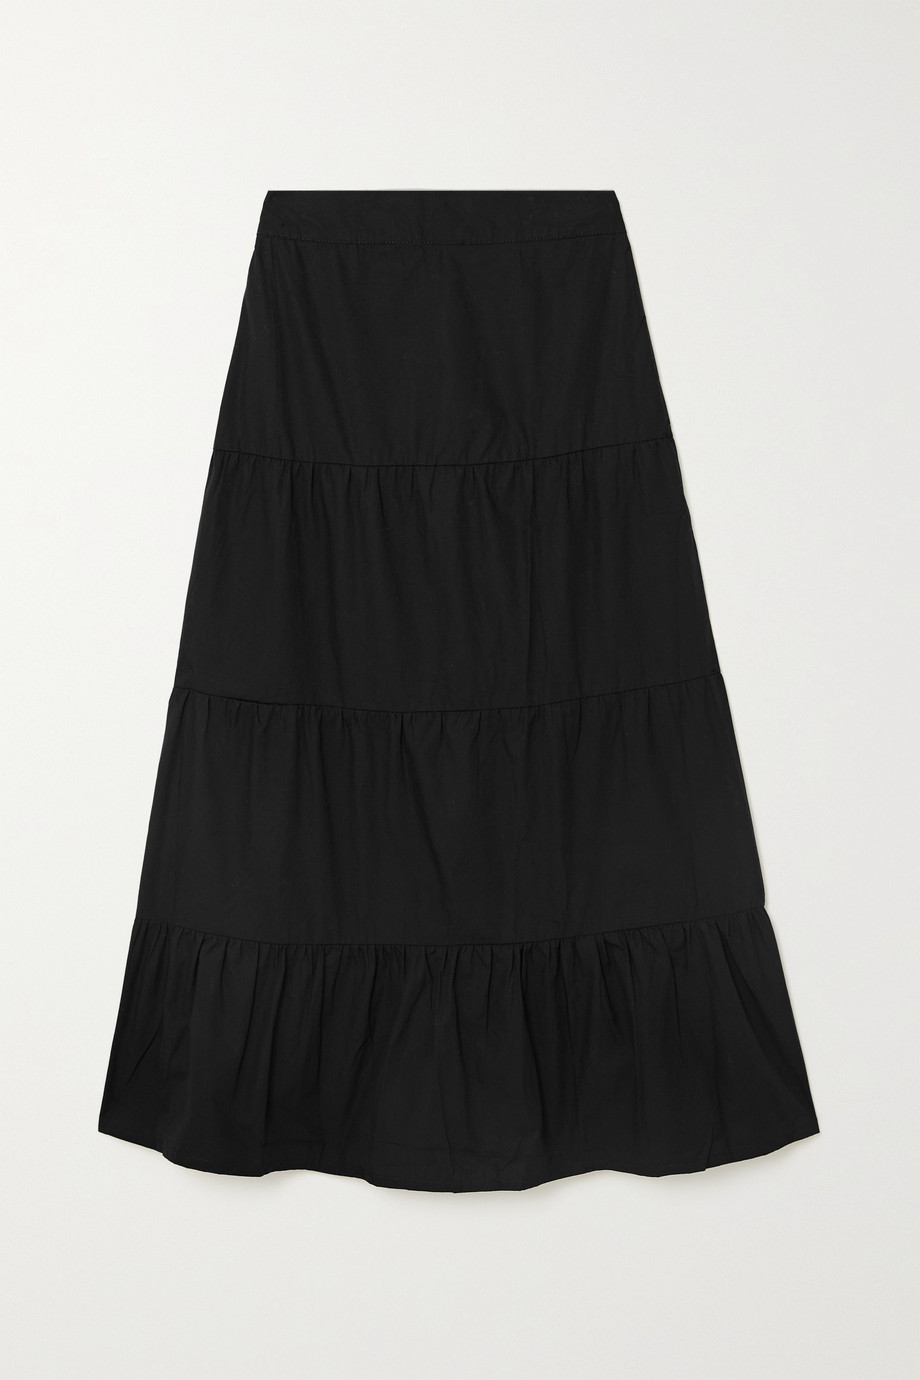 Faithfull The Brand + NET SUSTAIN Farida cotton-poplin midi skirt